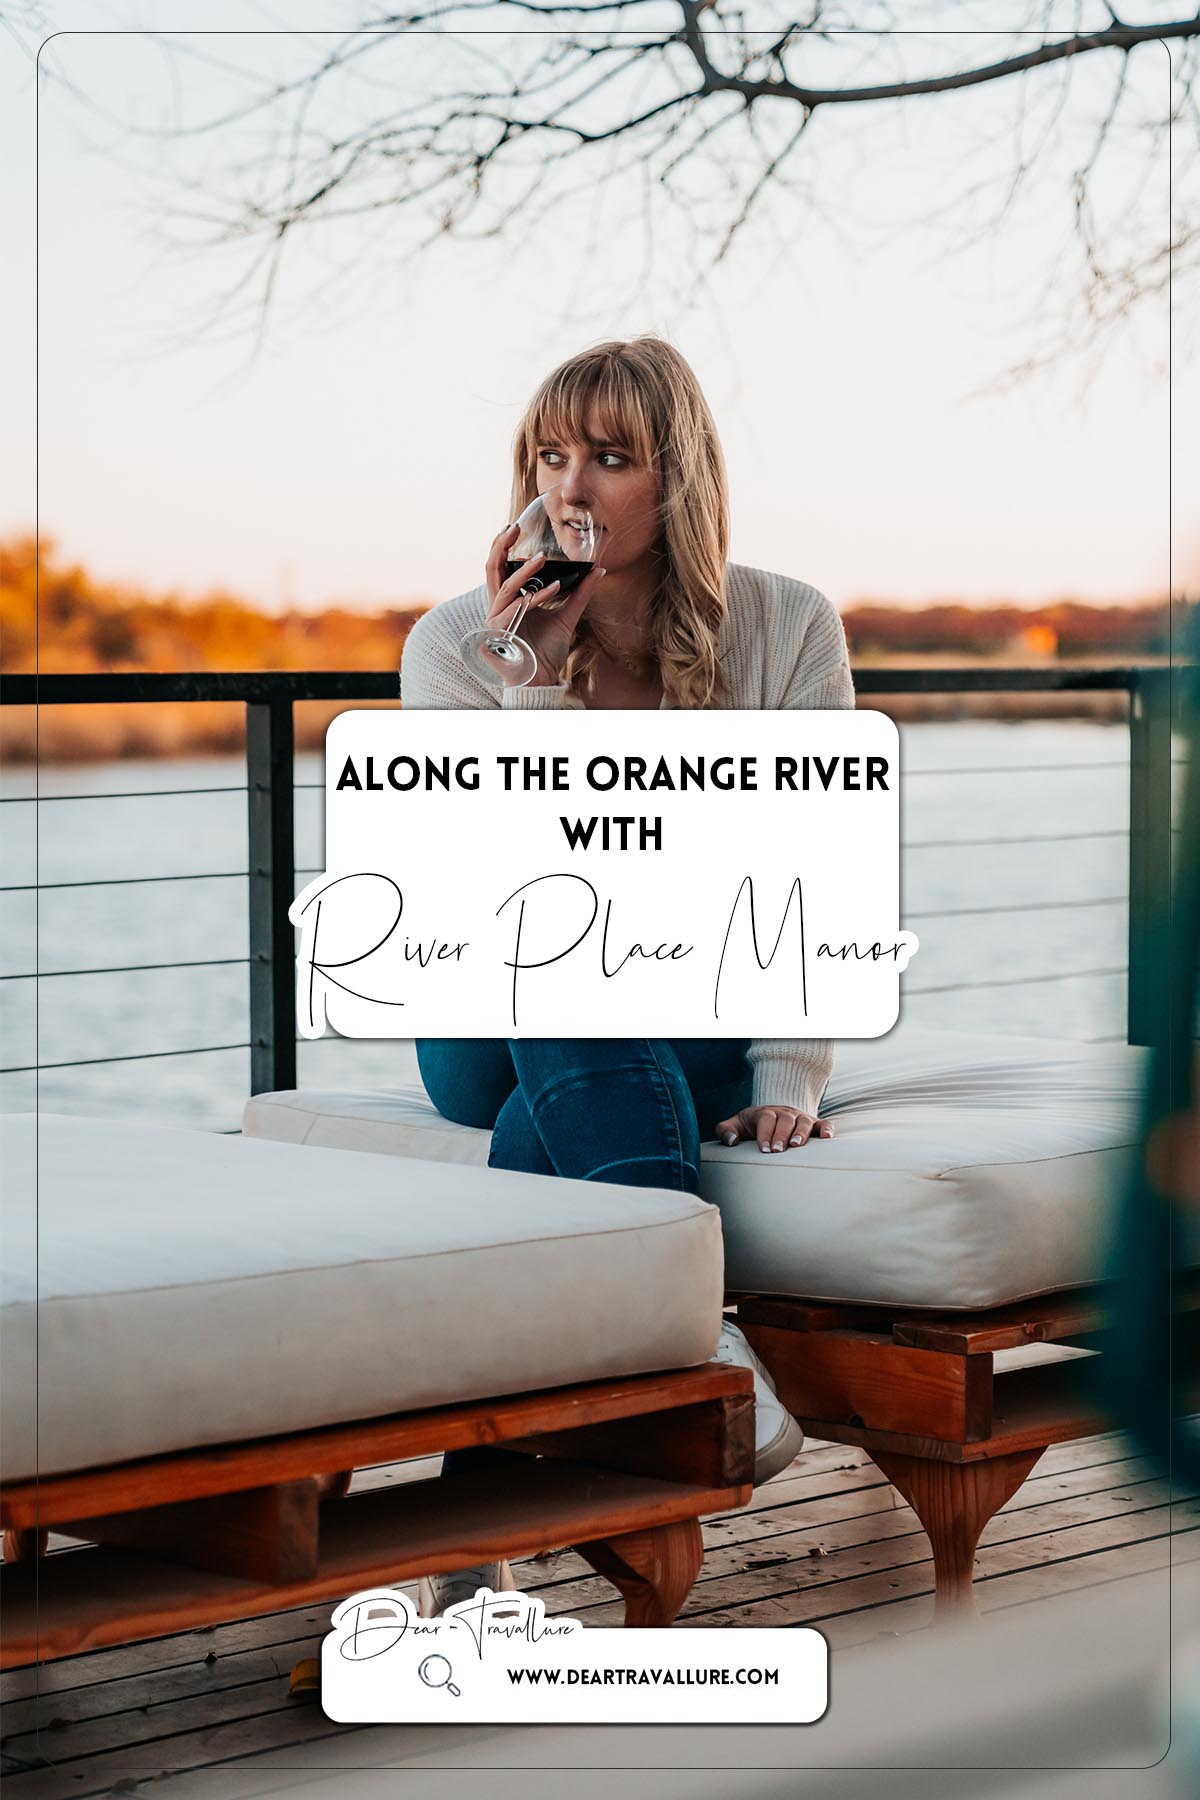 Along the Orange River with River Place Manor - Pinterest Image